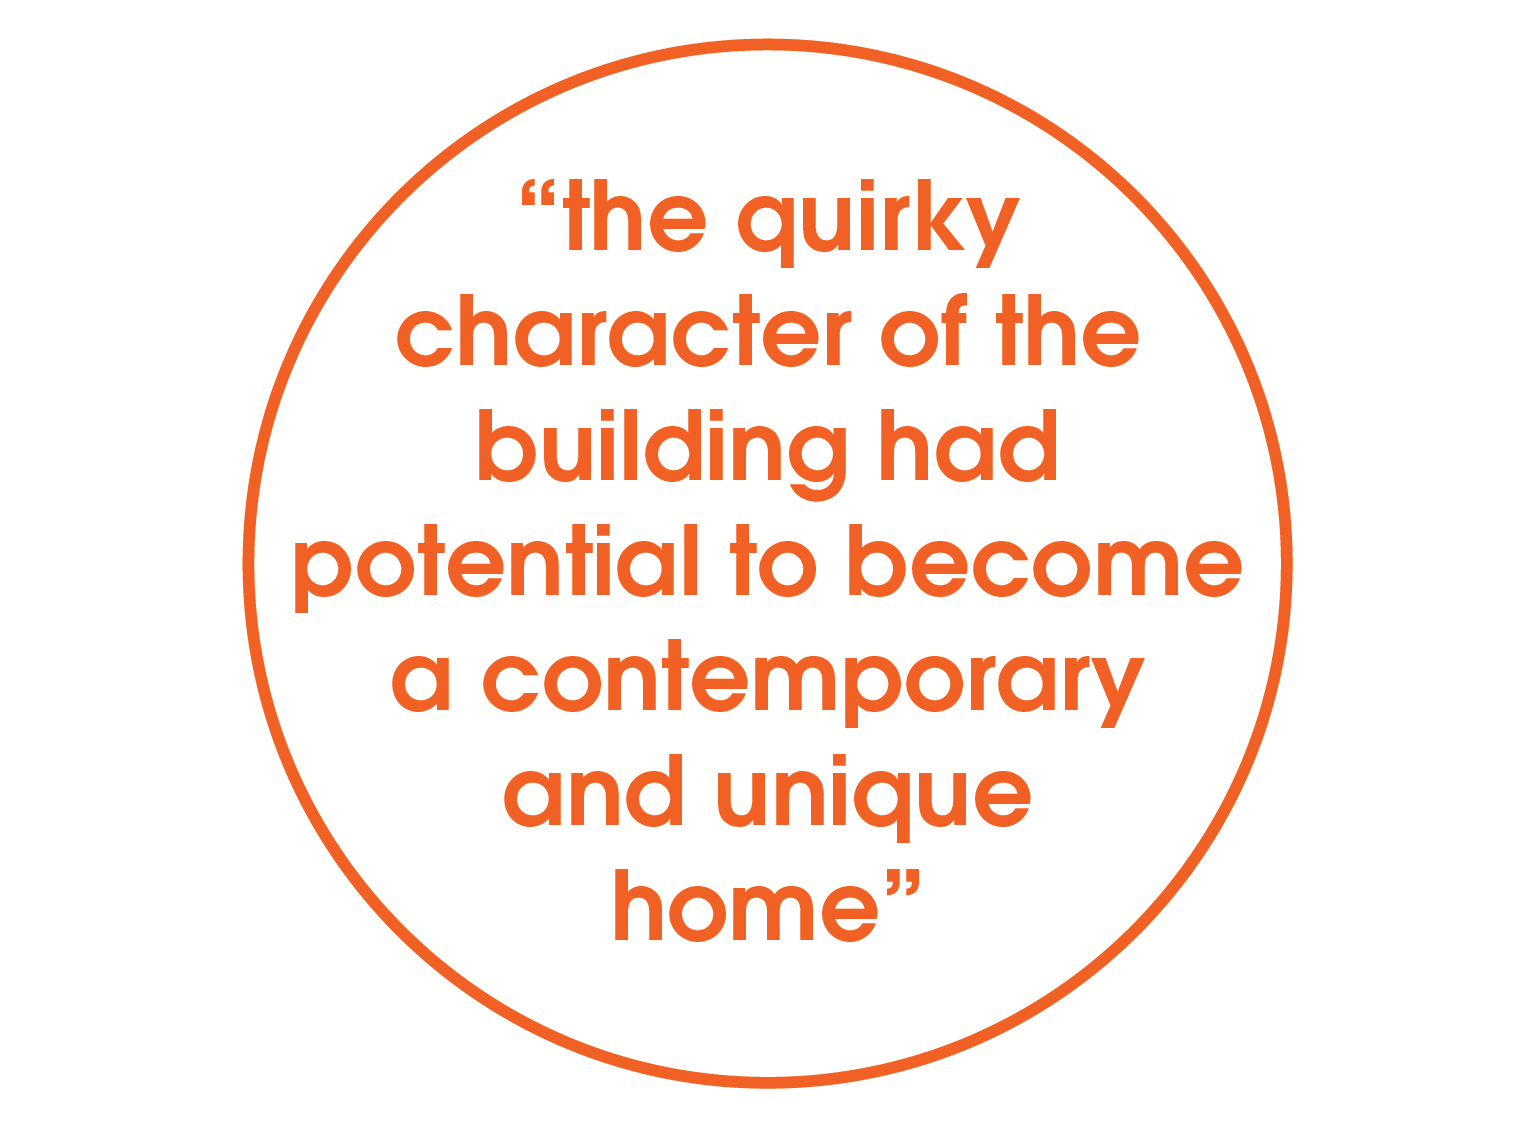 quirky character or building quote